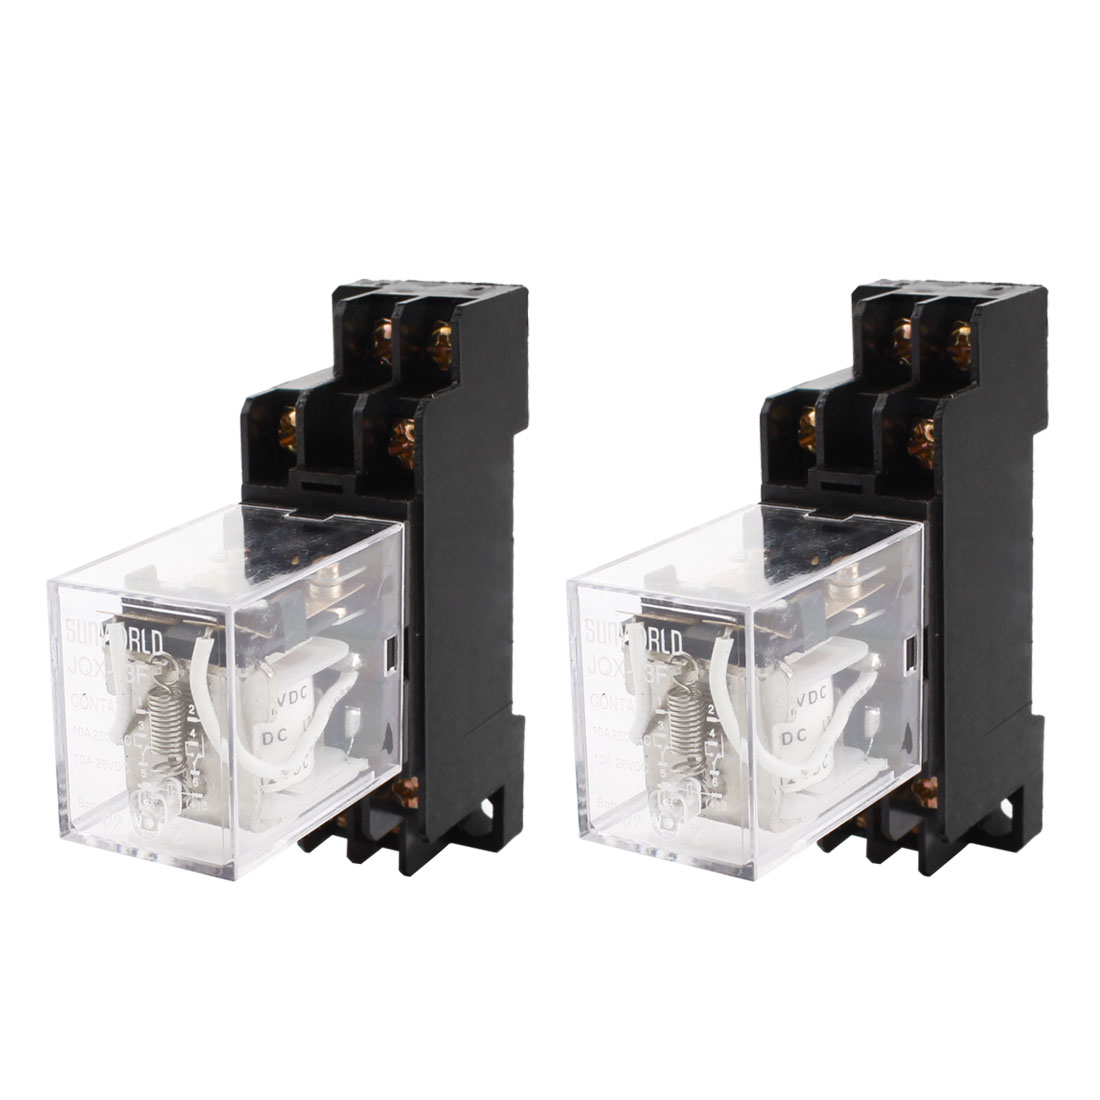 2pcs JQX-13F DC 12V Coil Voltage DPDT 8 Terminals 35mm DIN Rail Power Electromagnetic Relay w Socket